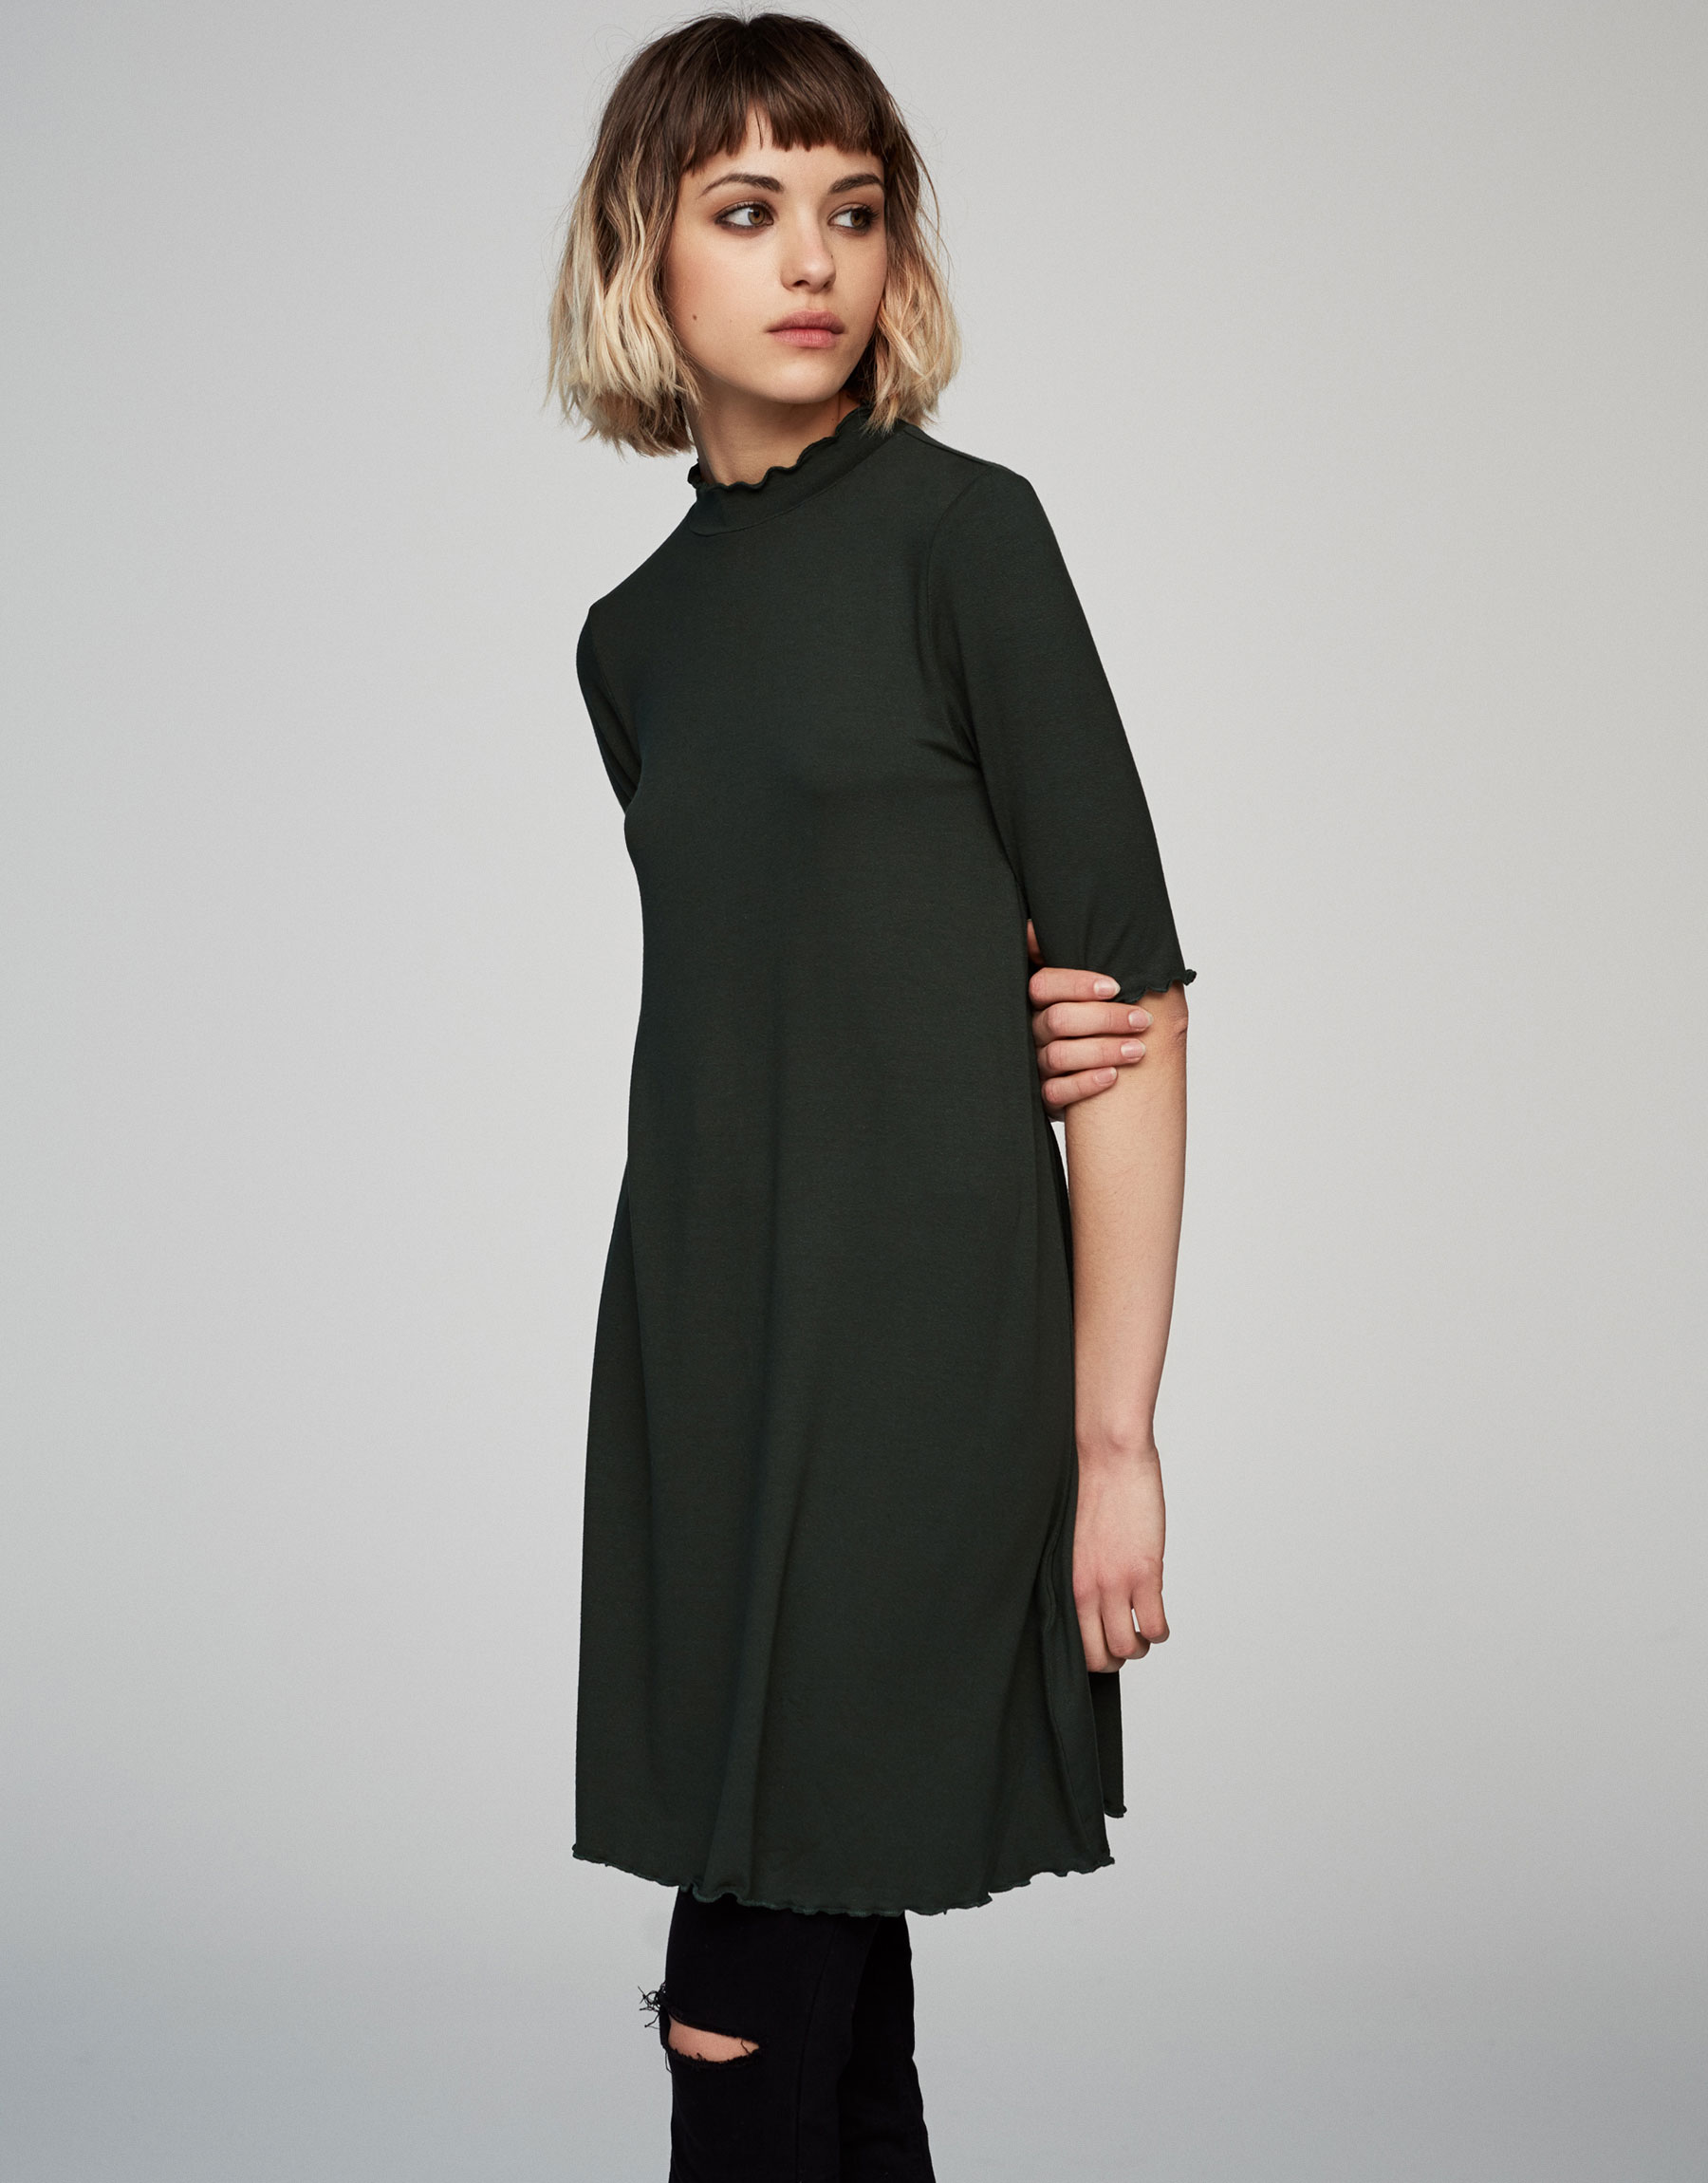 High neck short sleeve dress